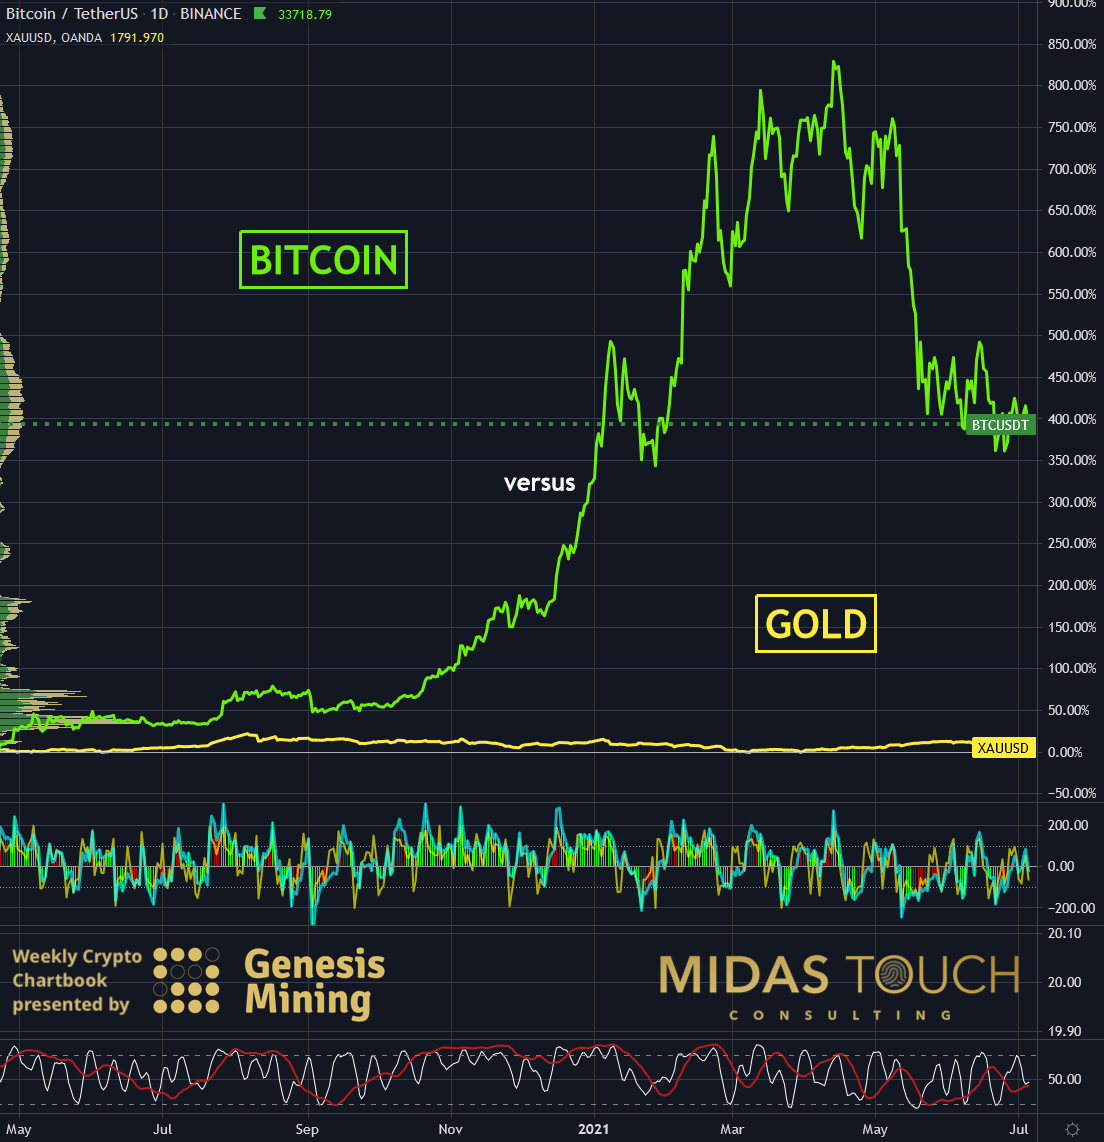 Bitcoin in US-Dollar versus Gold in US-Dollar, daily chart as of July 6th, 2021.